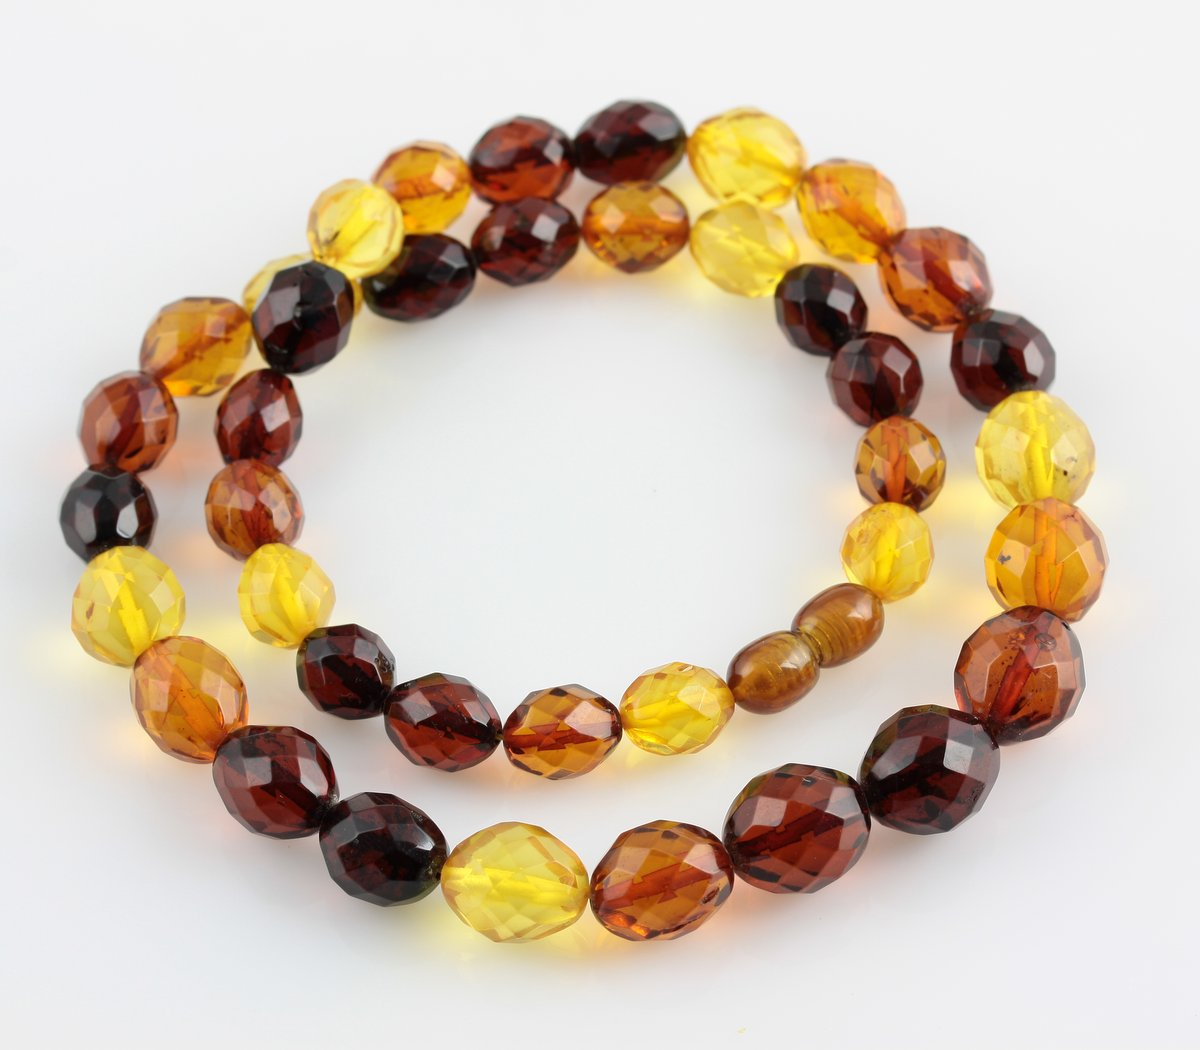 Olive Garden With Amberstone: Necklaces :: Fashion :: Facet Cut OLIVE Beads Baltic Amber